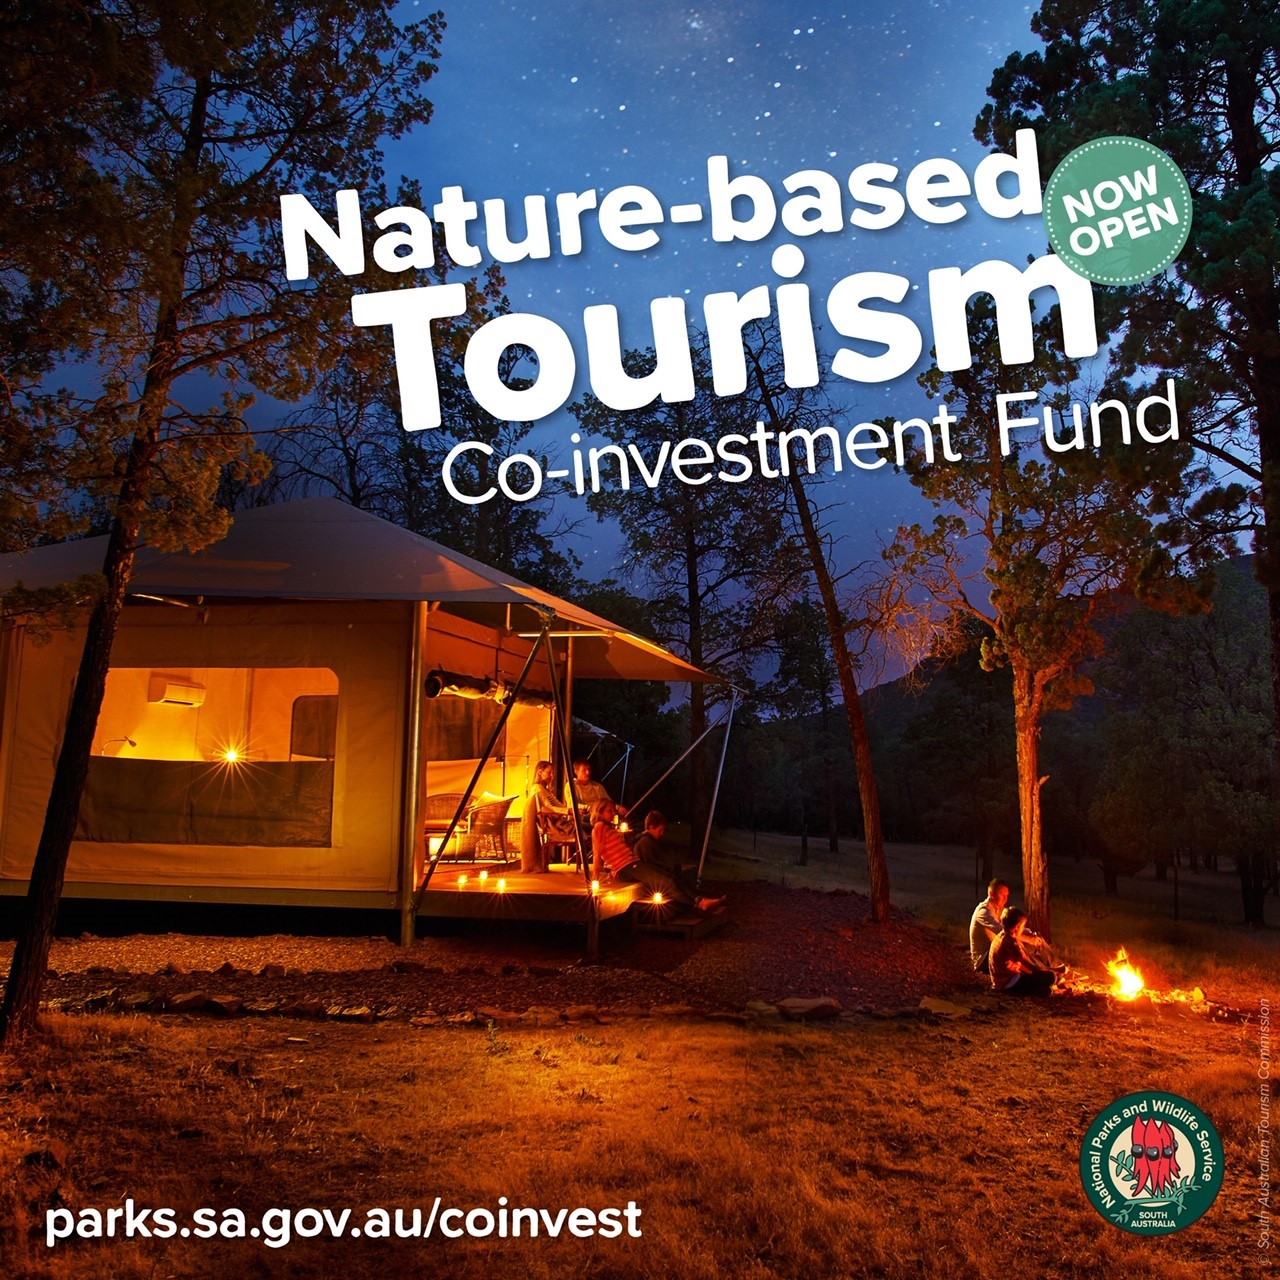 Nature-based Tourism Co-Investment Fund